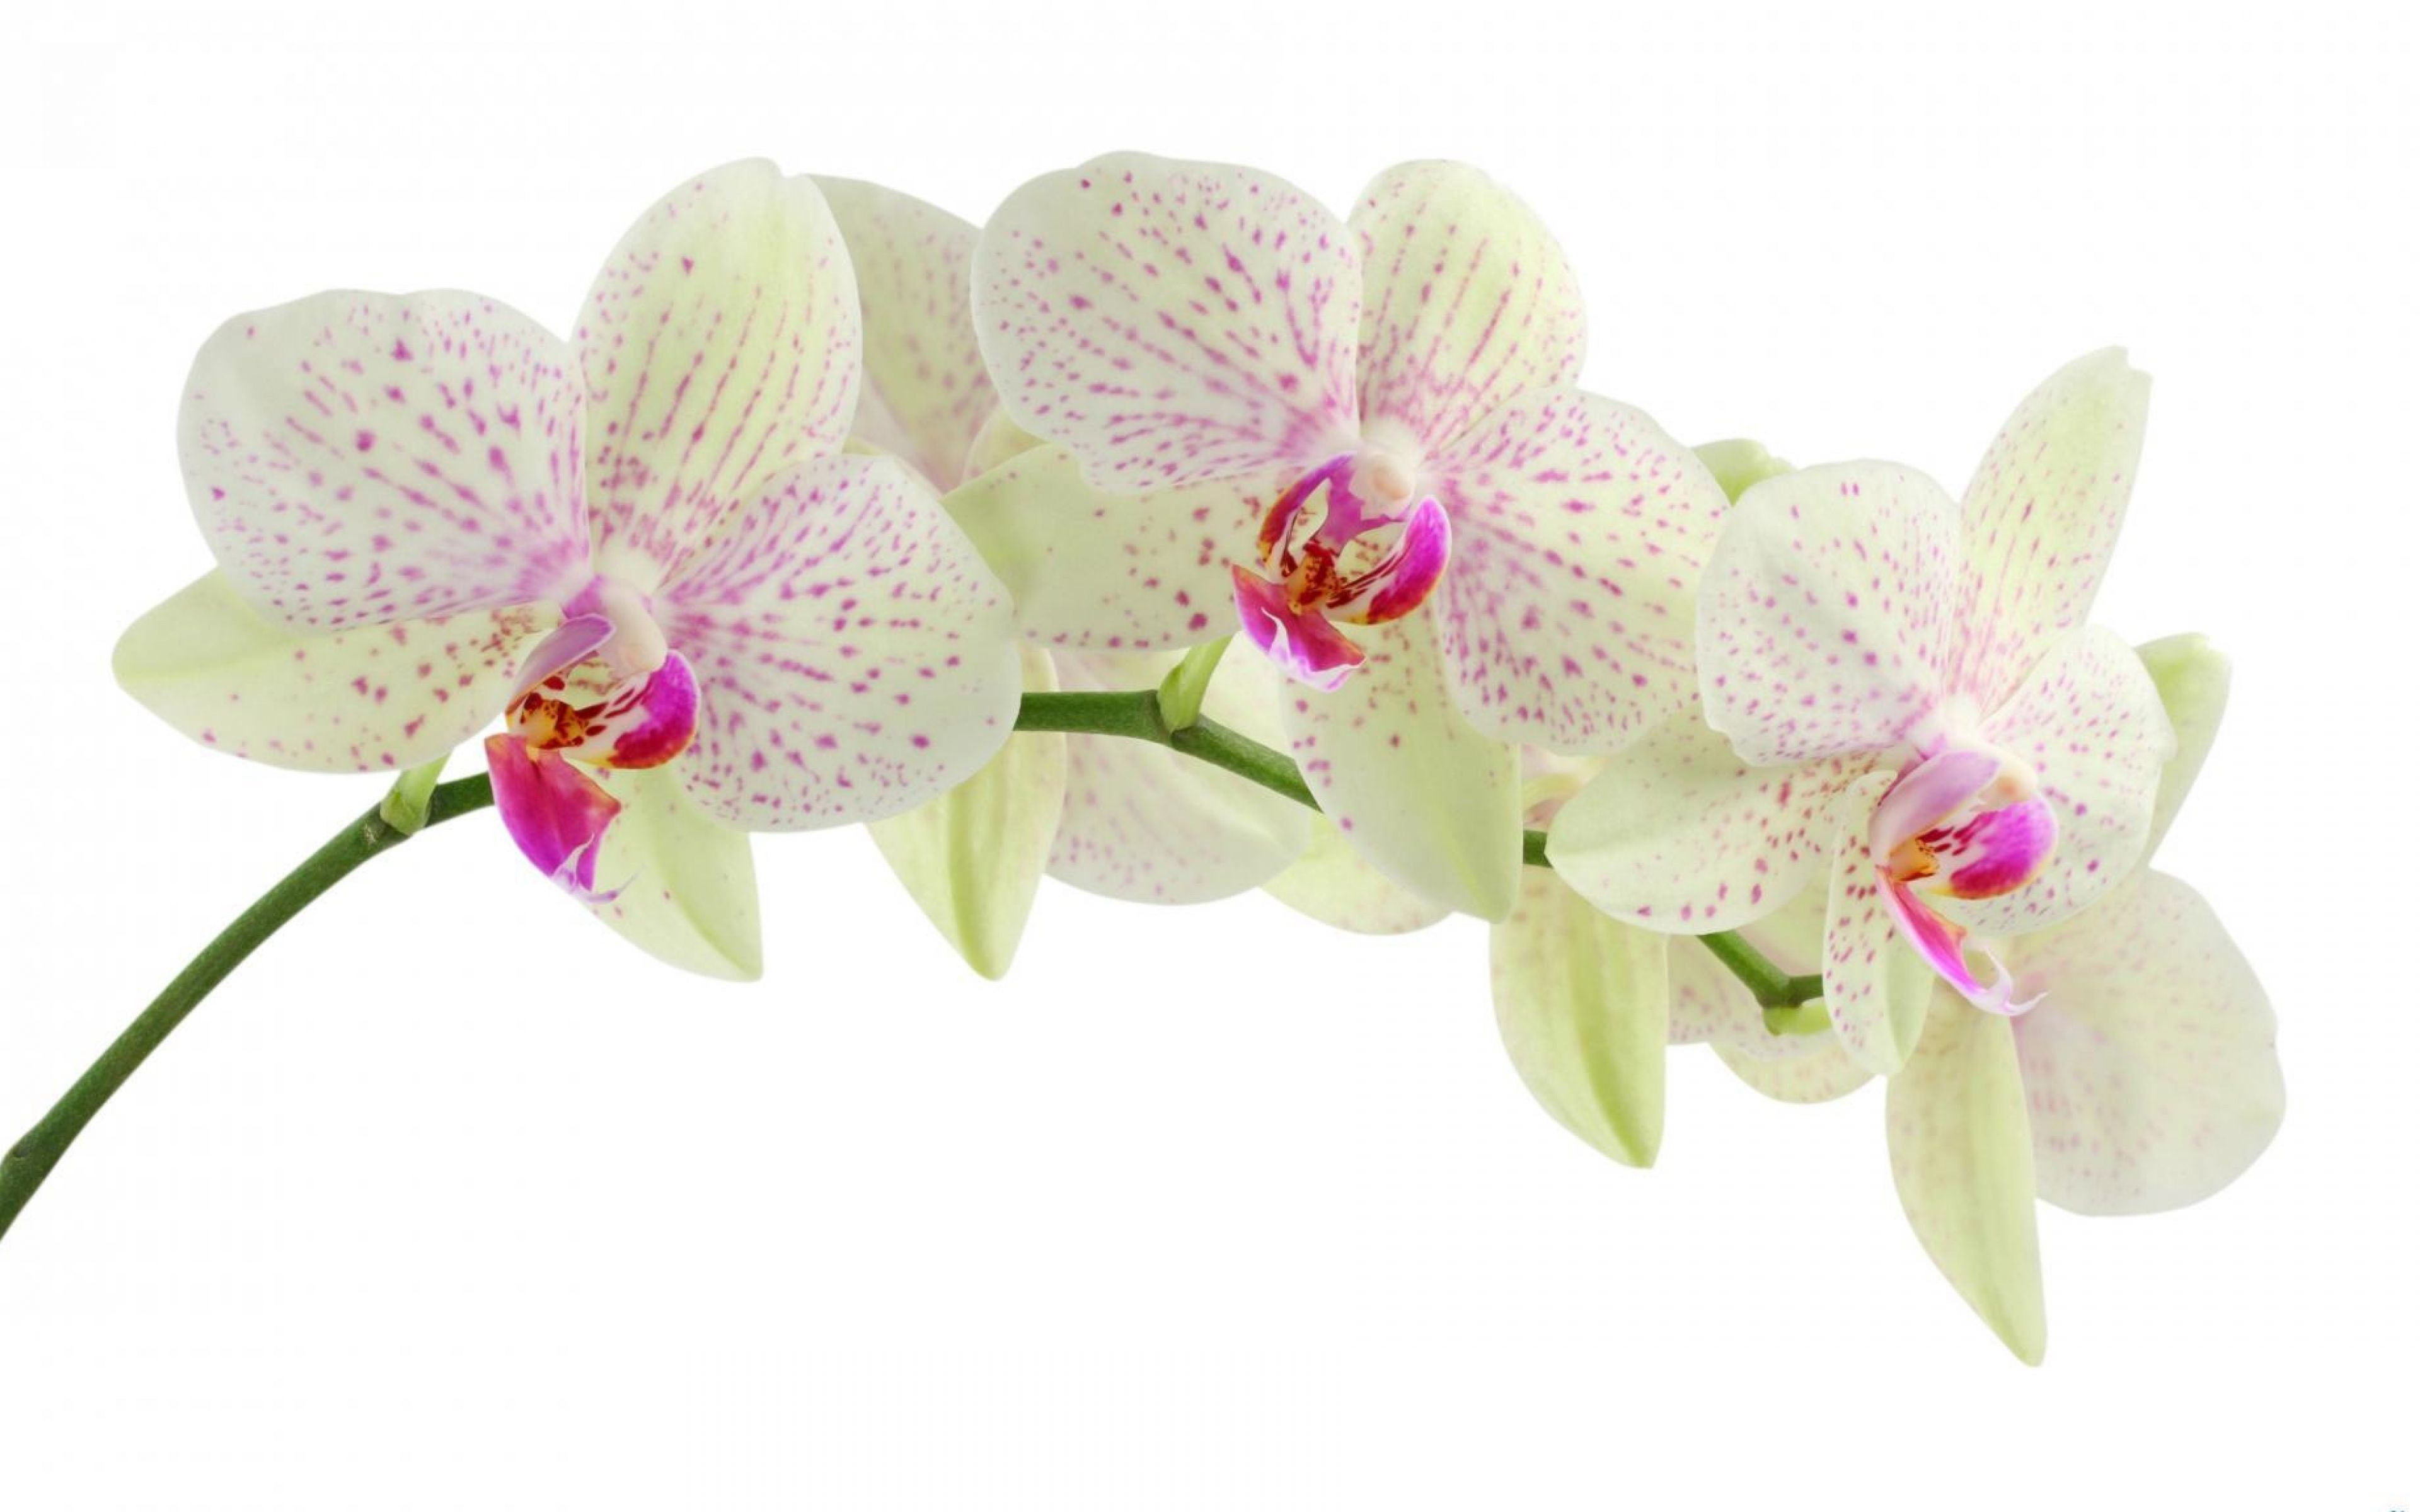 3840x2400 Wallpaper Orchid Flower White Branch Background